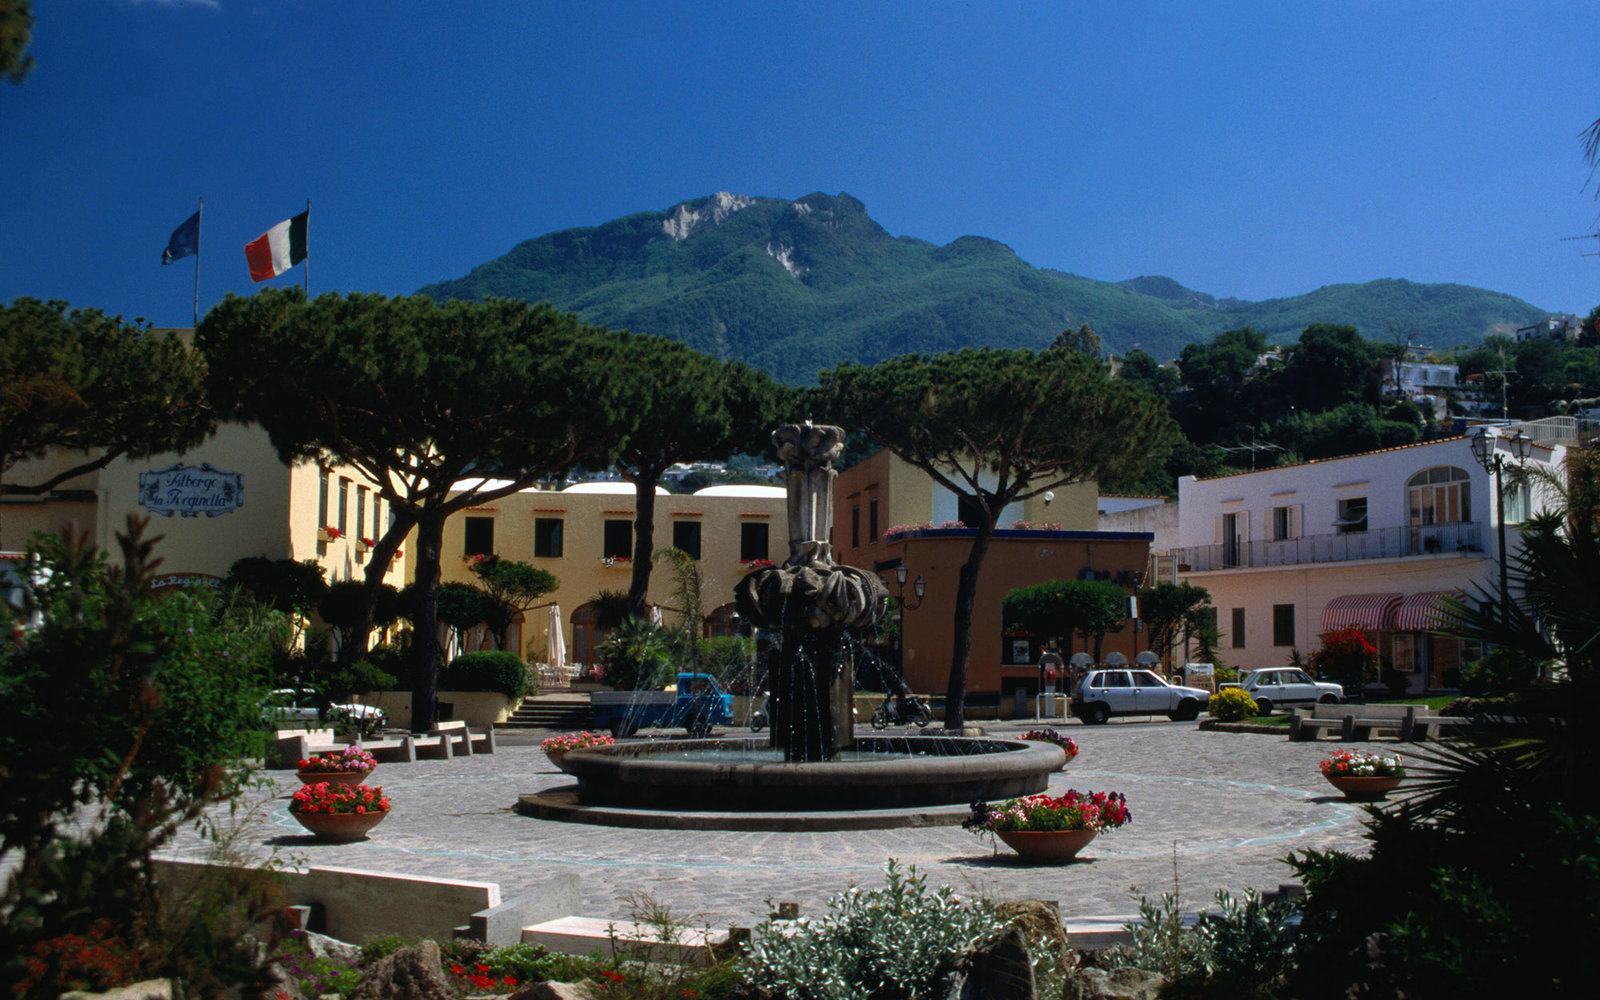 Fountain in the middle of the town square, Monte Epomeo in the background - Lacco Ameno, Isola d'Ischia, Golfo di Napoli, Campania